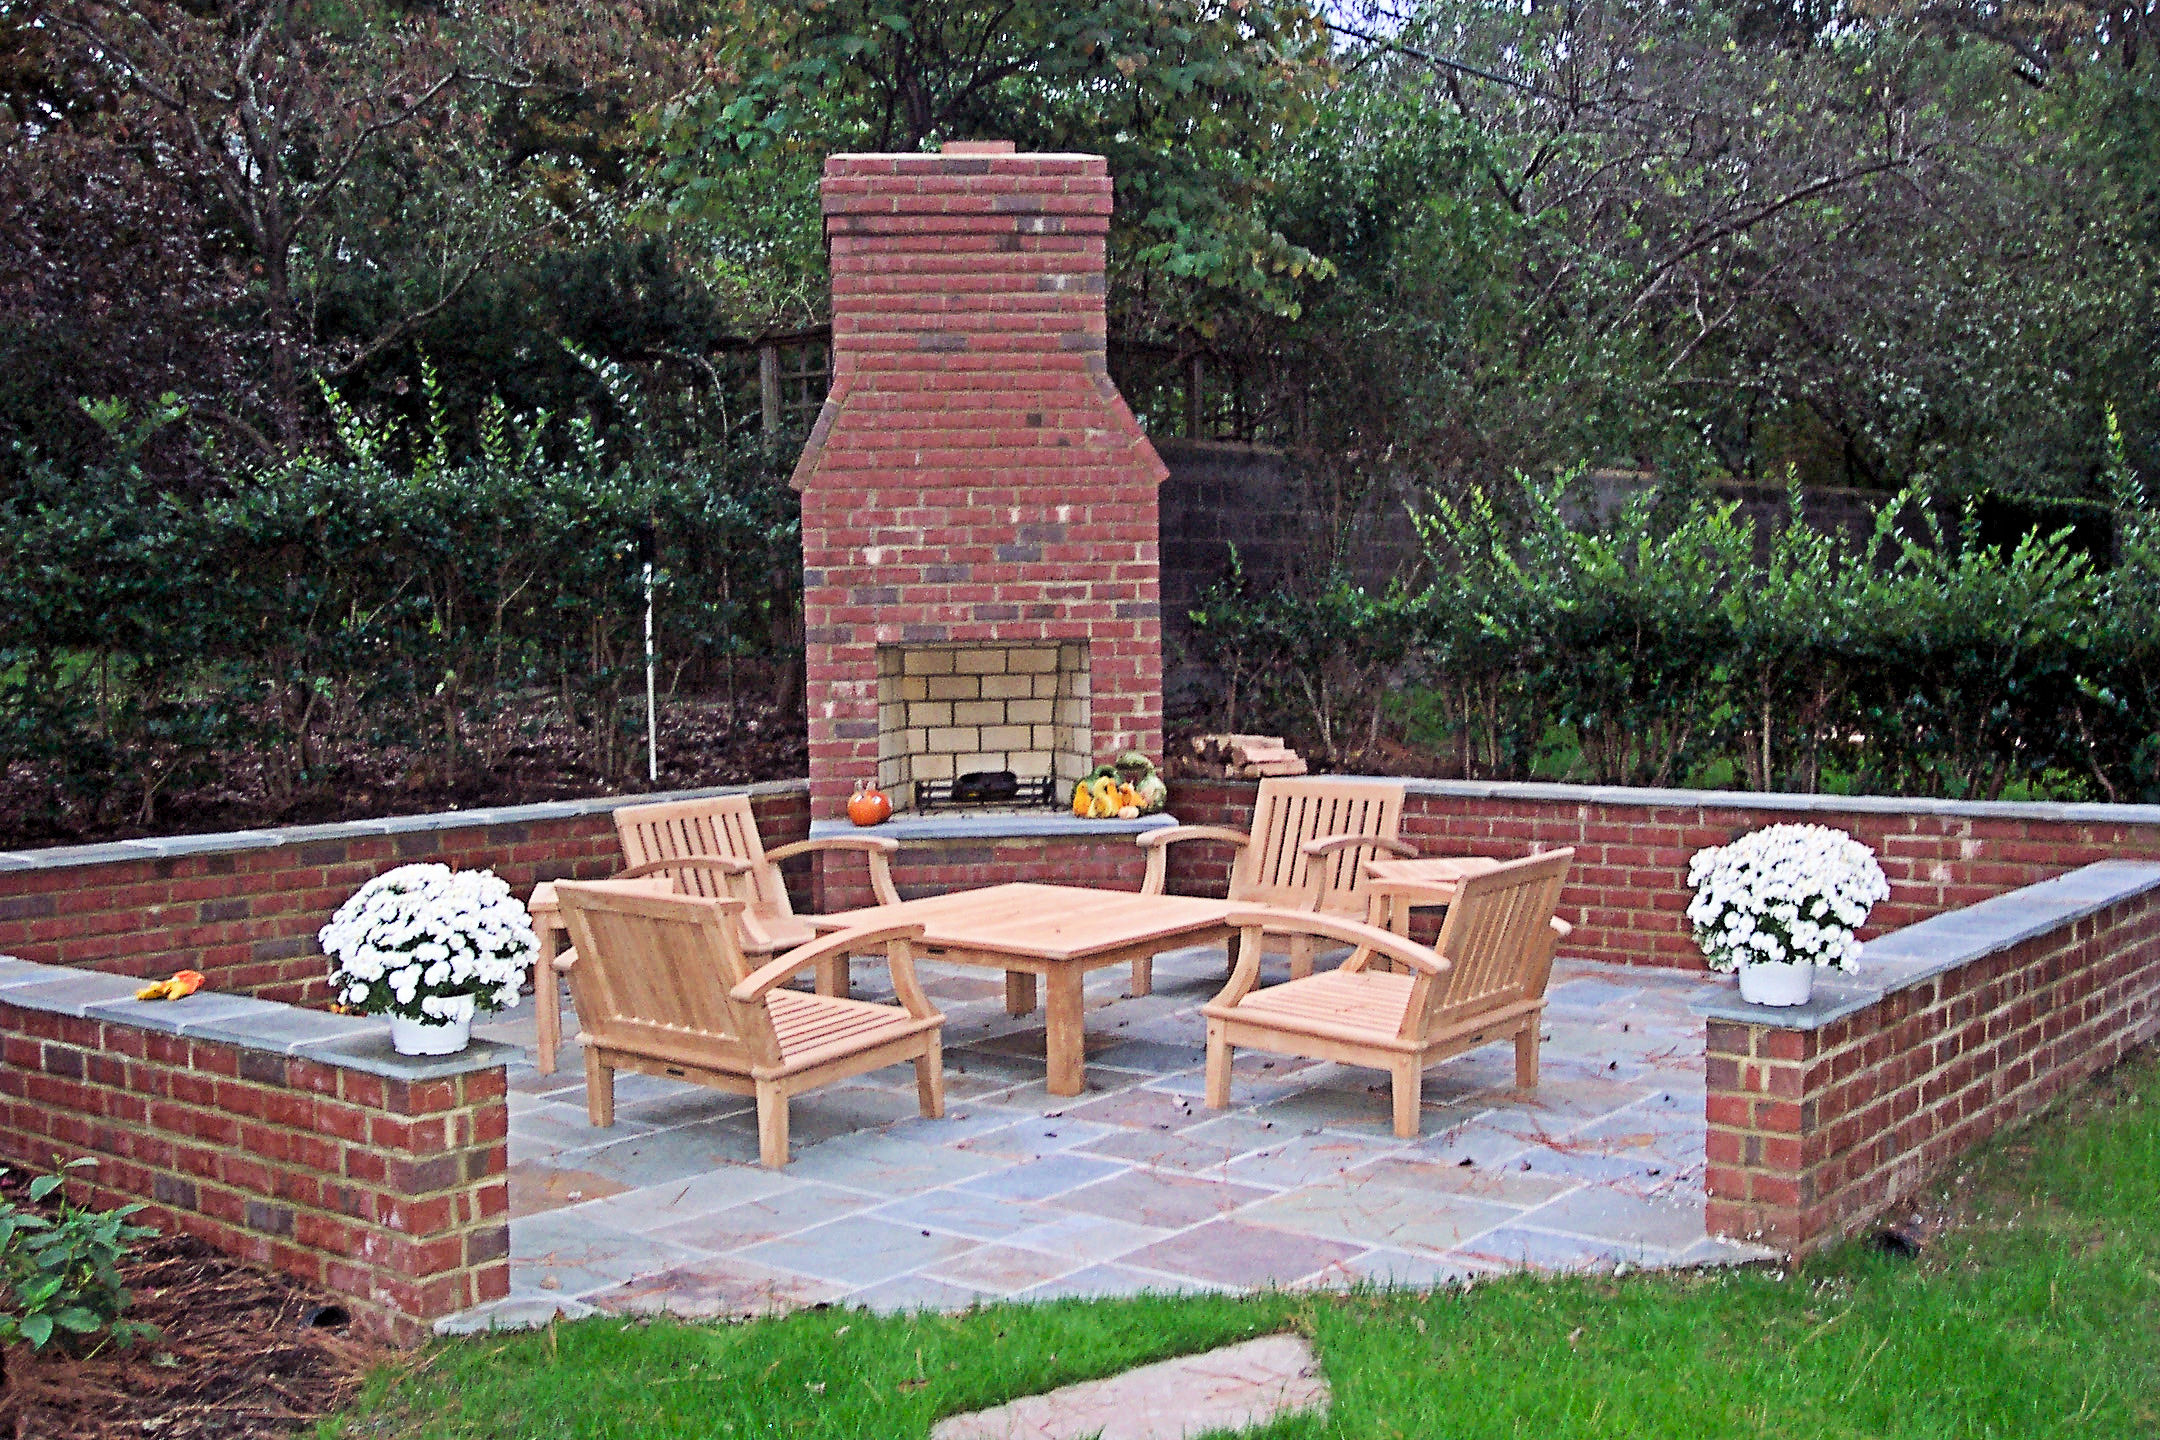 Outdoor Brick Fireplace | Patio Brick Fireplace on Simple Outdoor Brick Fireplace id=18842